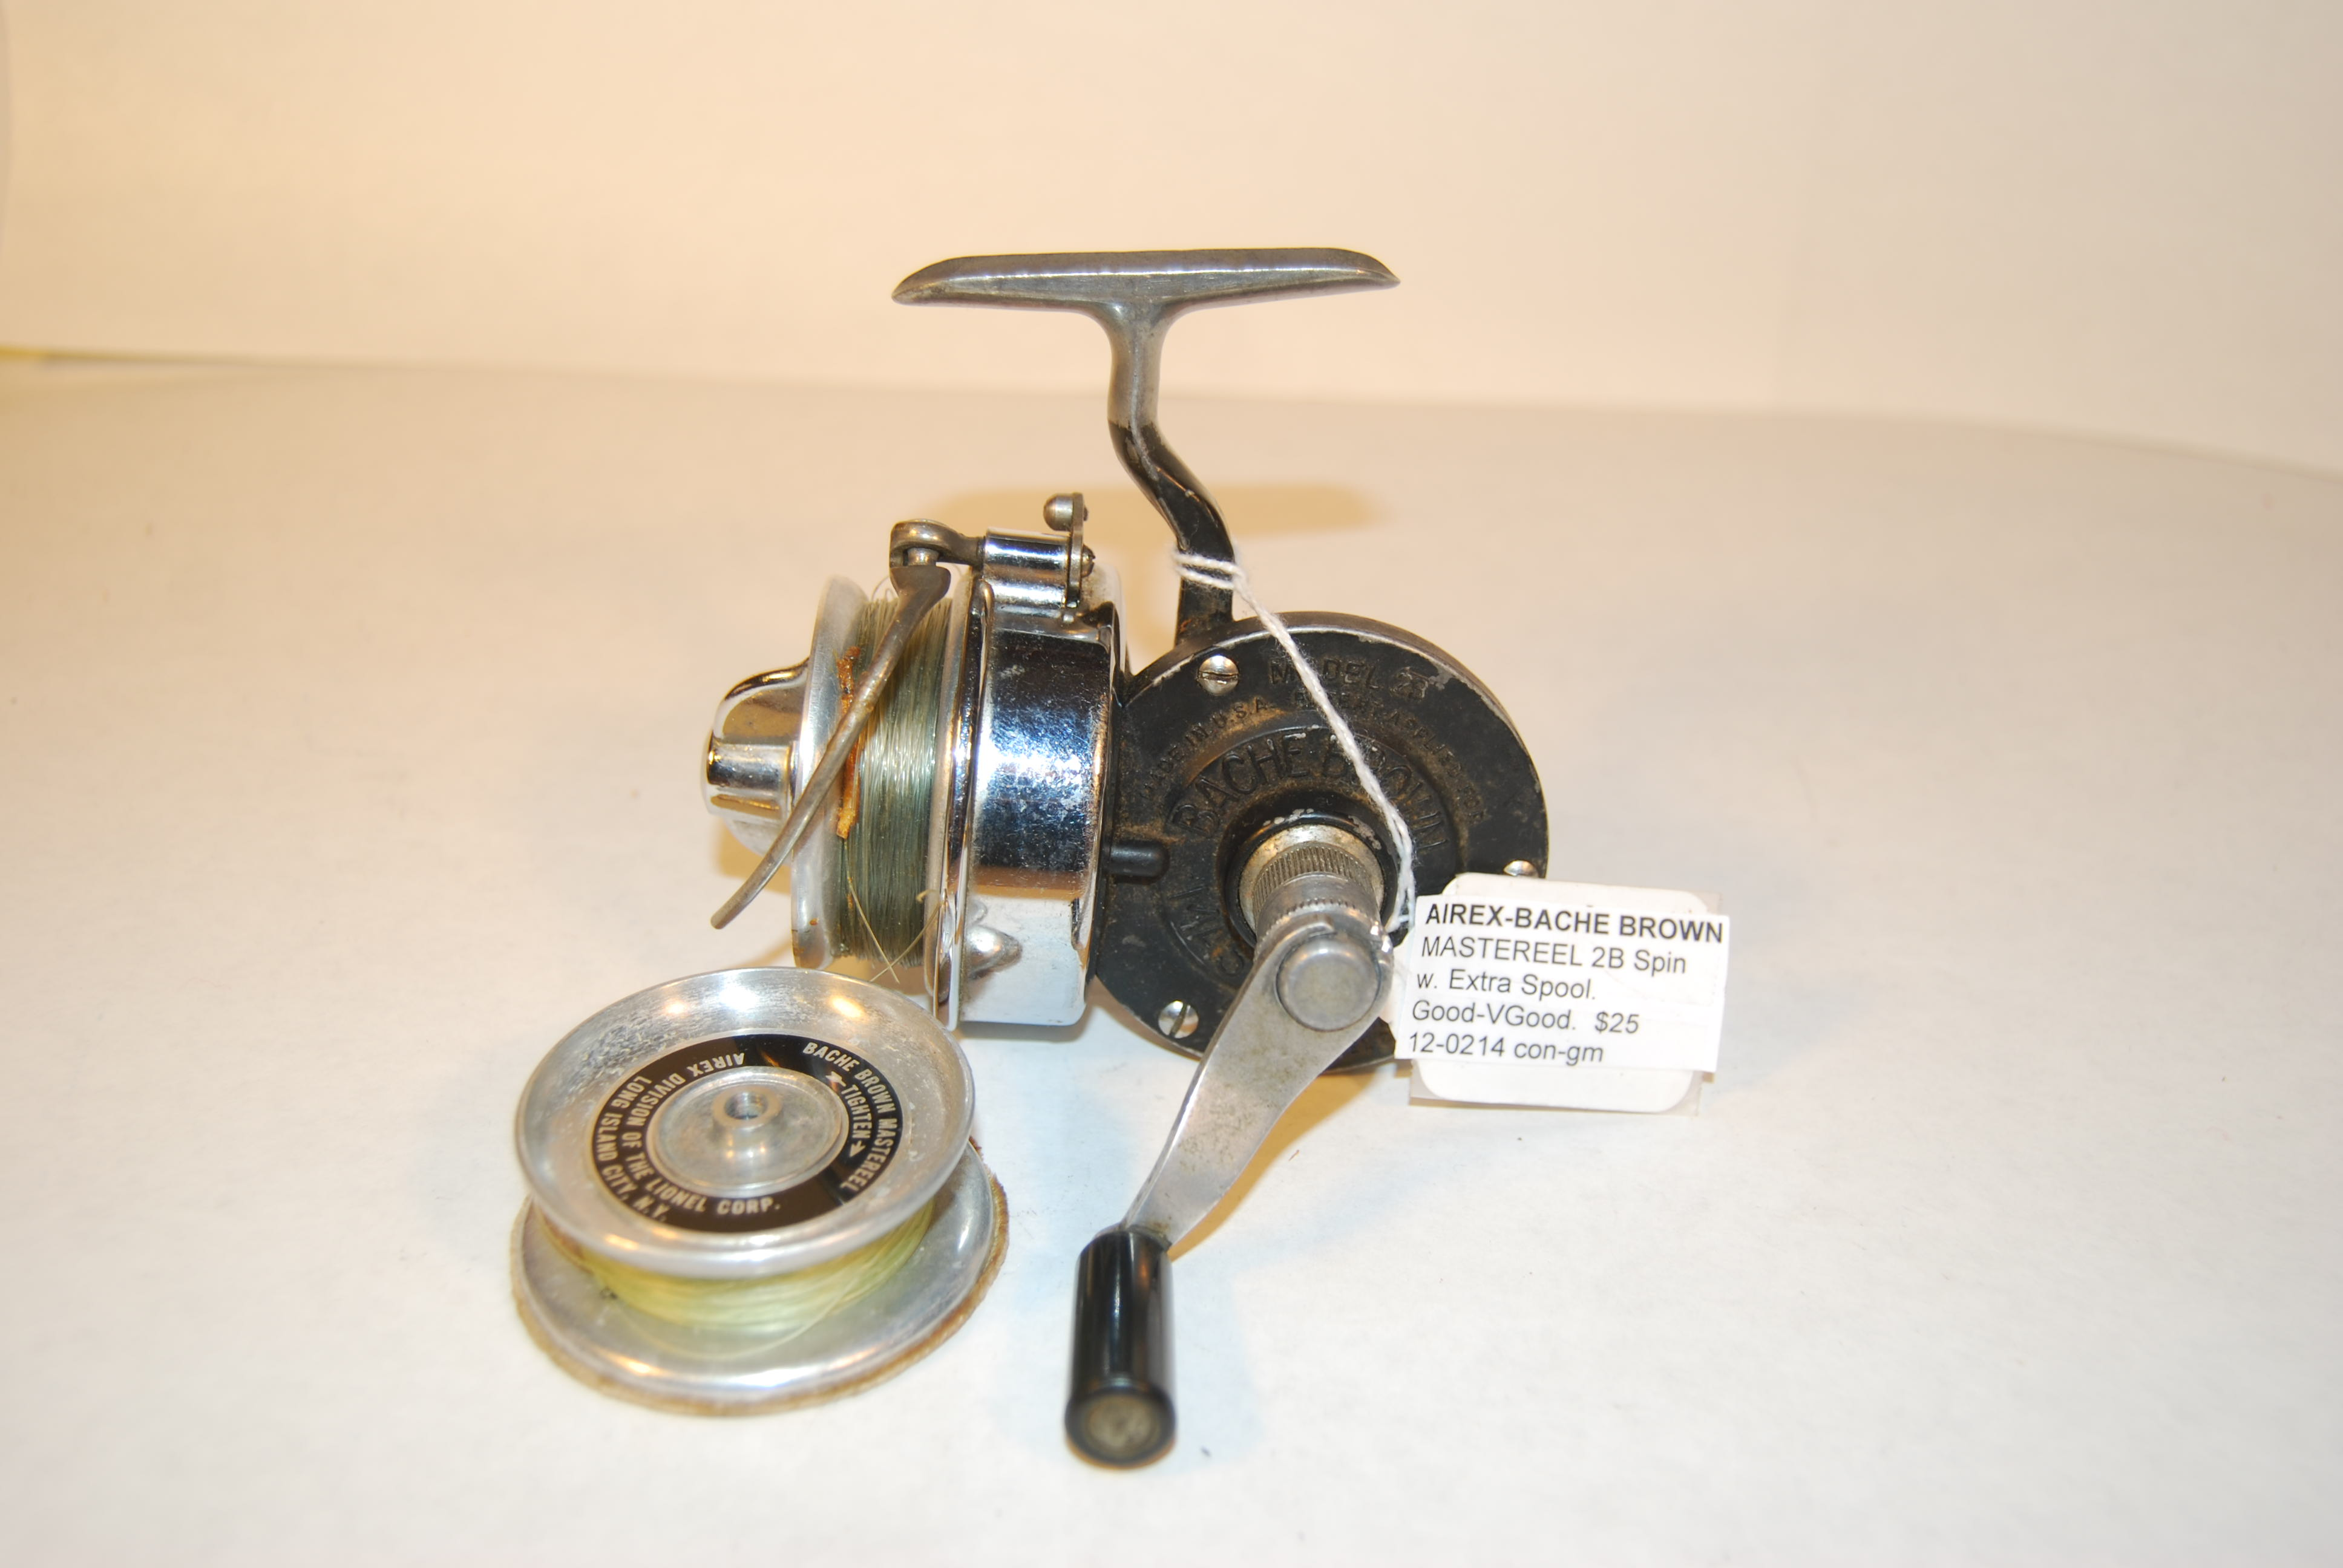 "Image for AIREX-BACHE BROWN ""MASTEREEL 2B"" Spin Reel. With EXTRA SPOOL."